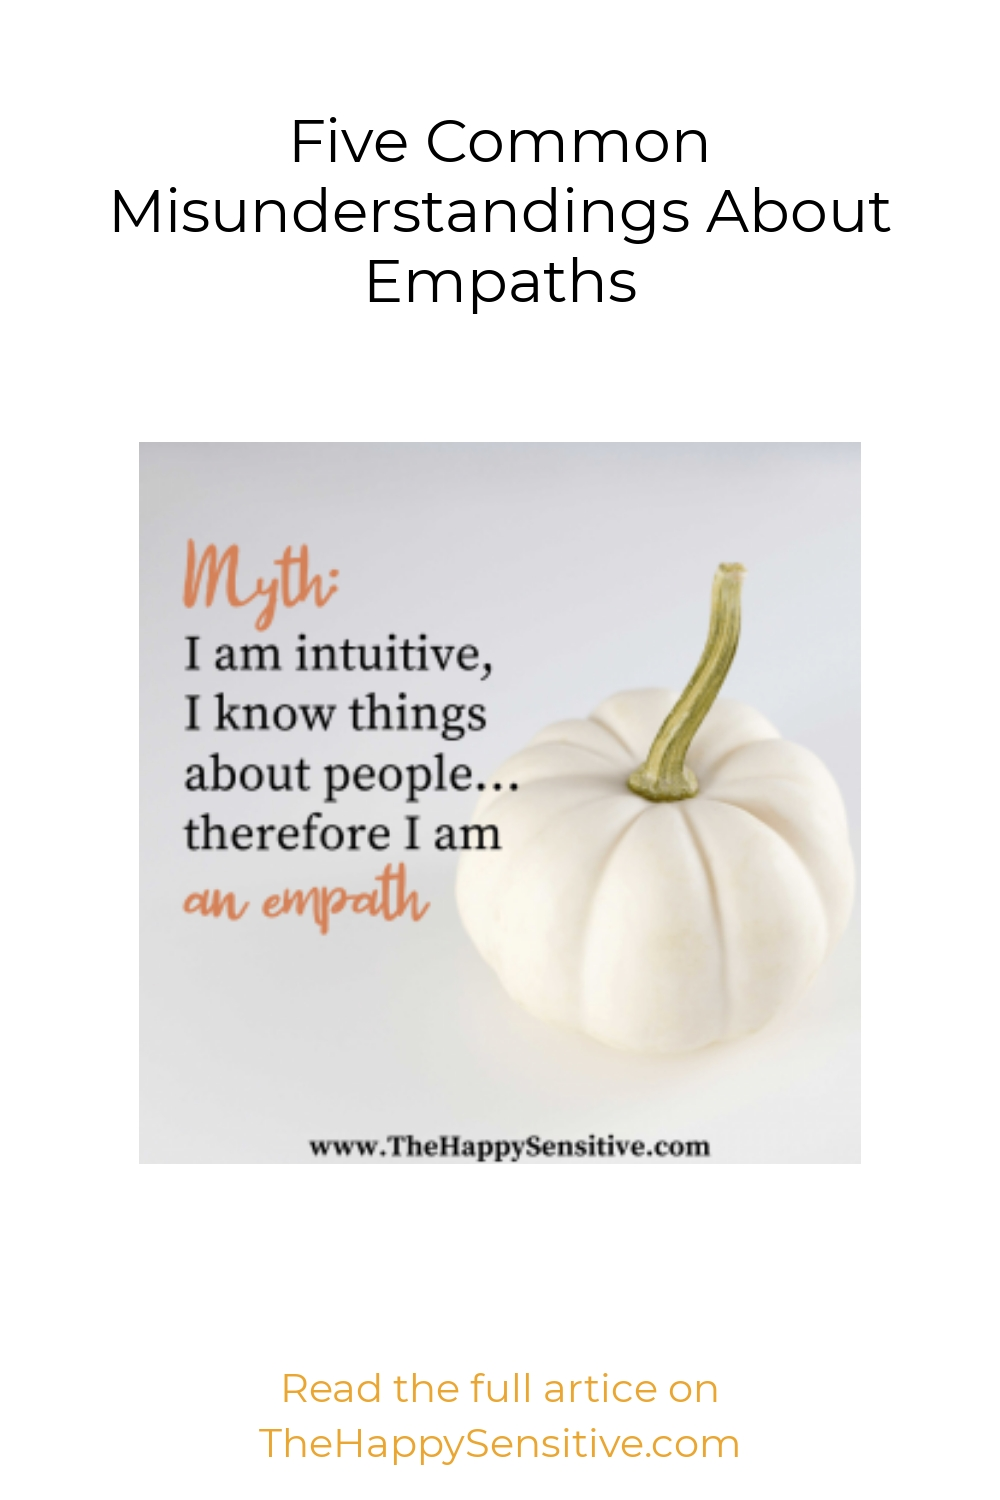 Five Common Misunderstandings About Empaths